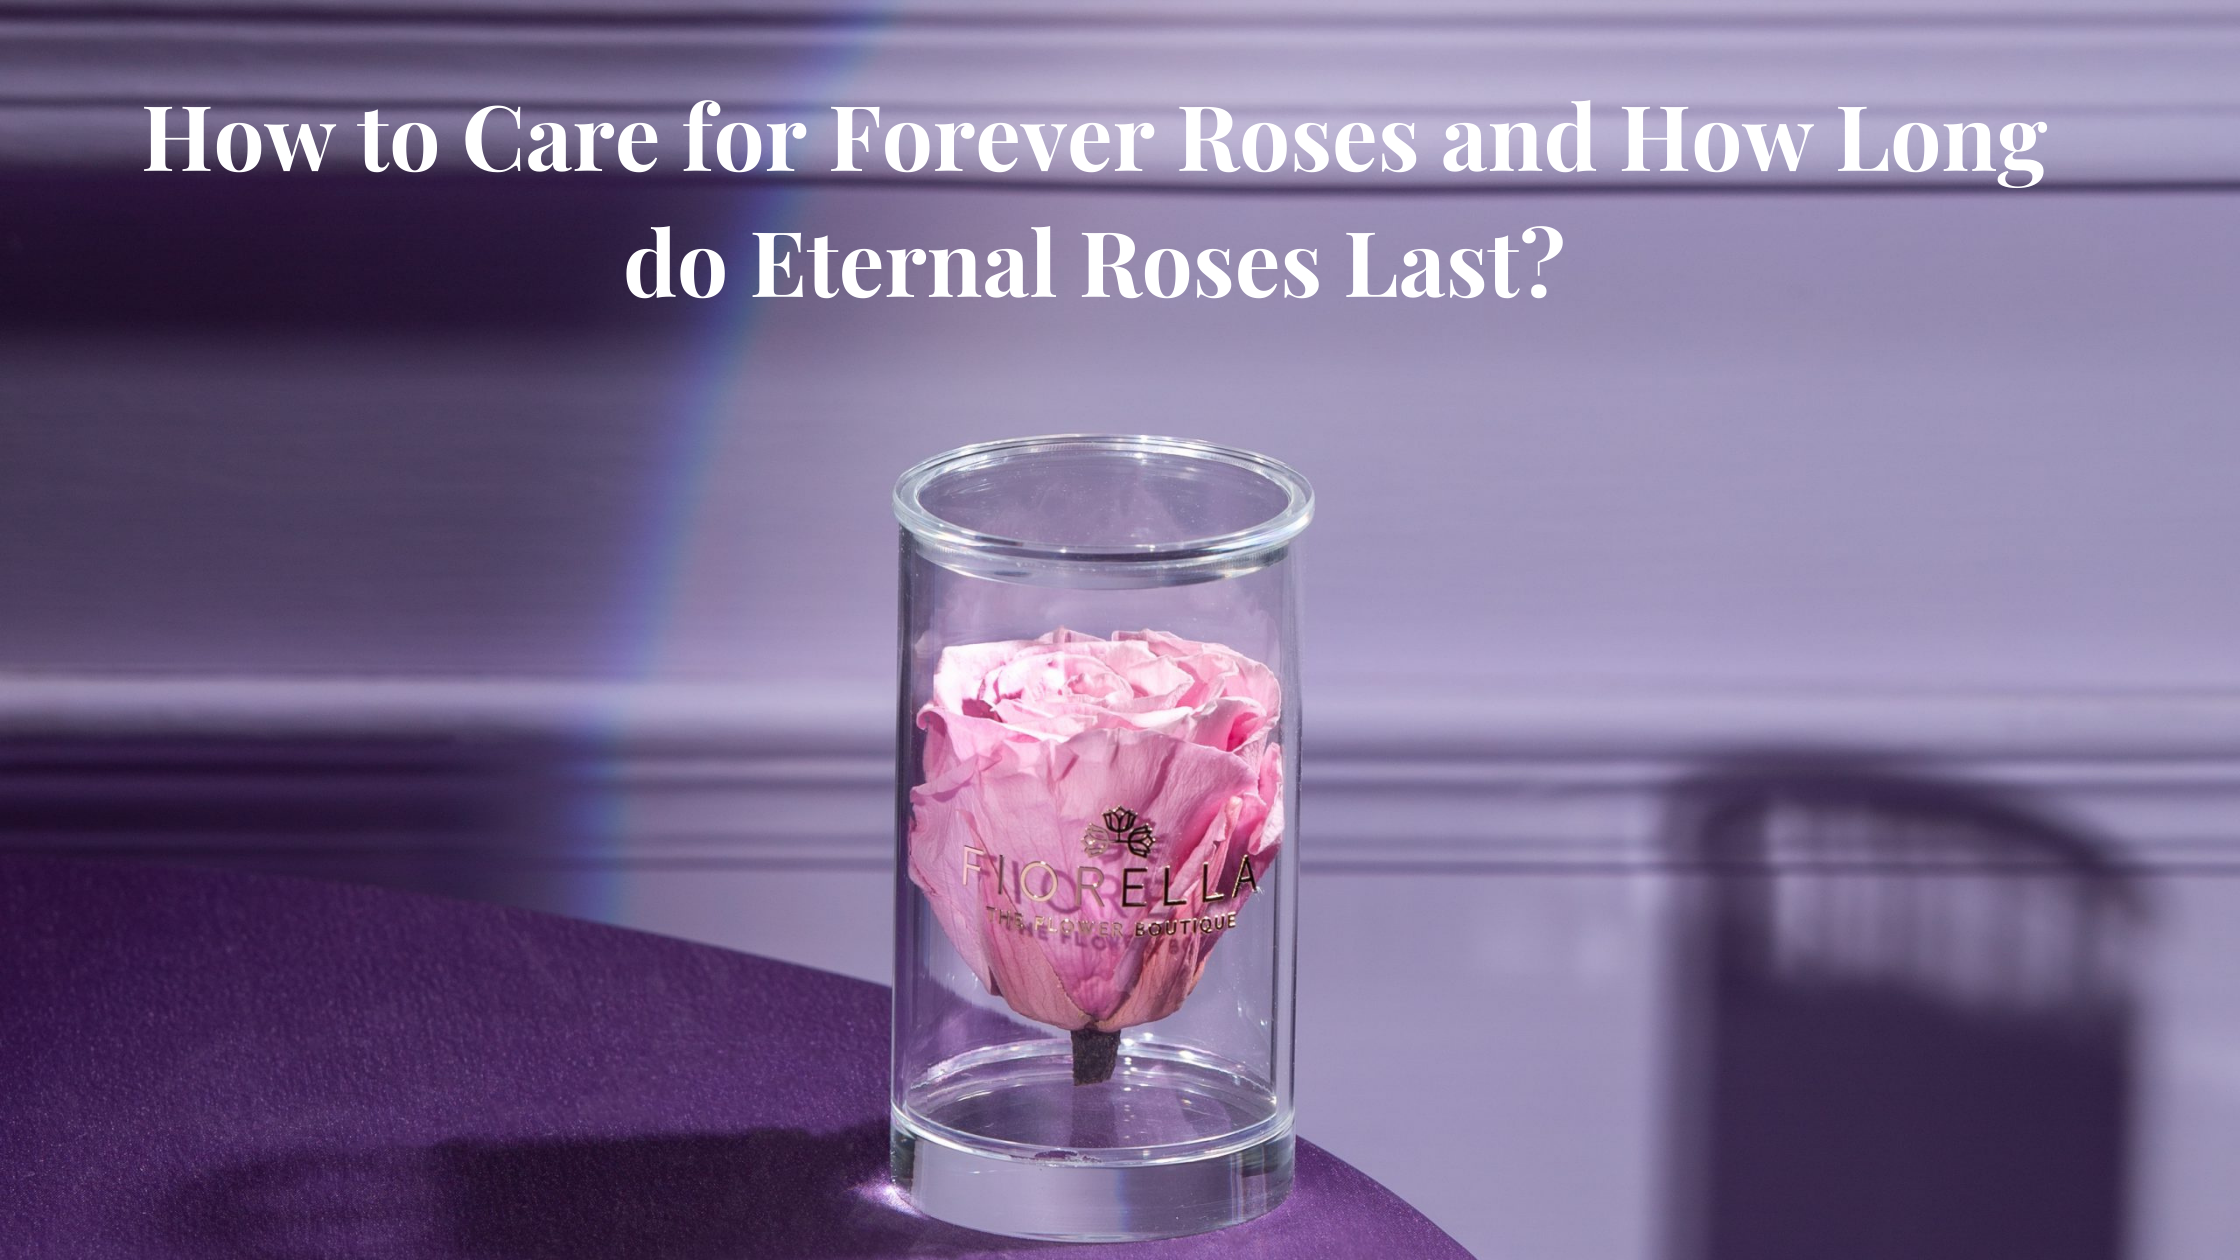 How to Care for Forever Roses and How Long do Eternal Roses Last